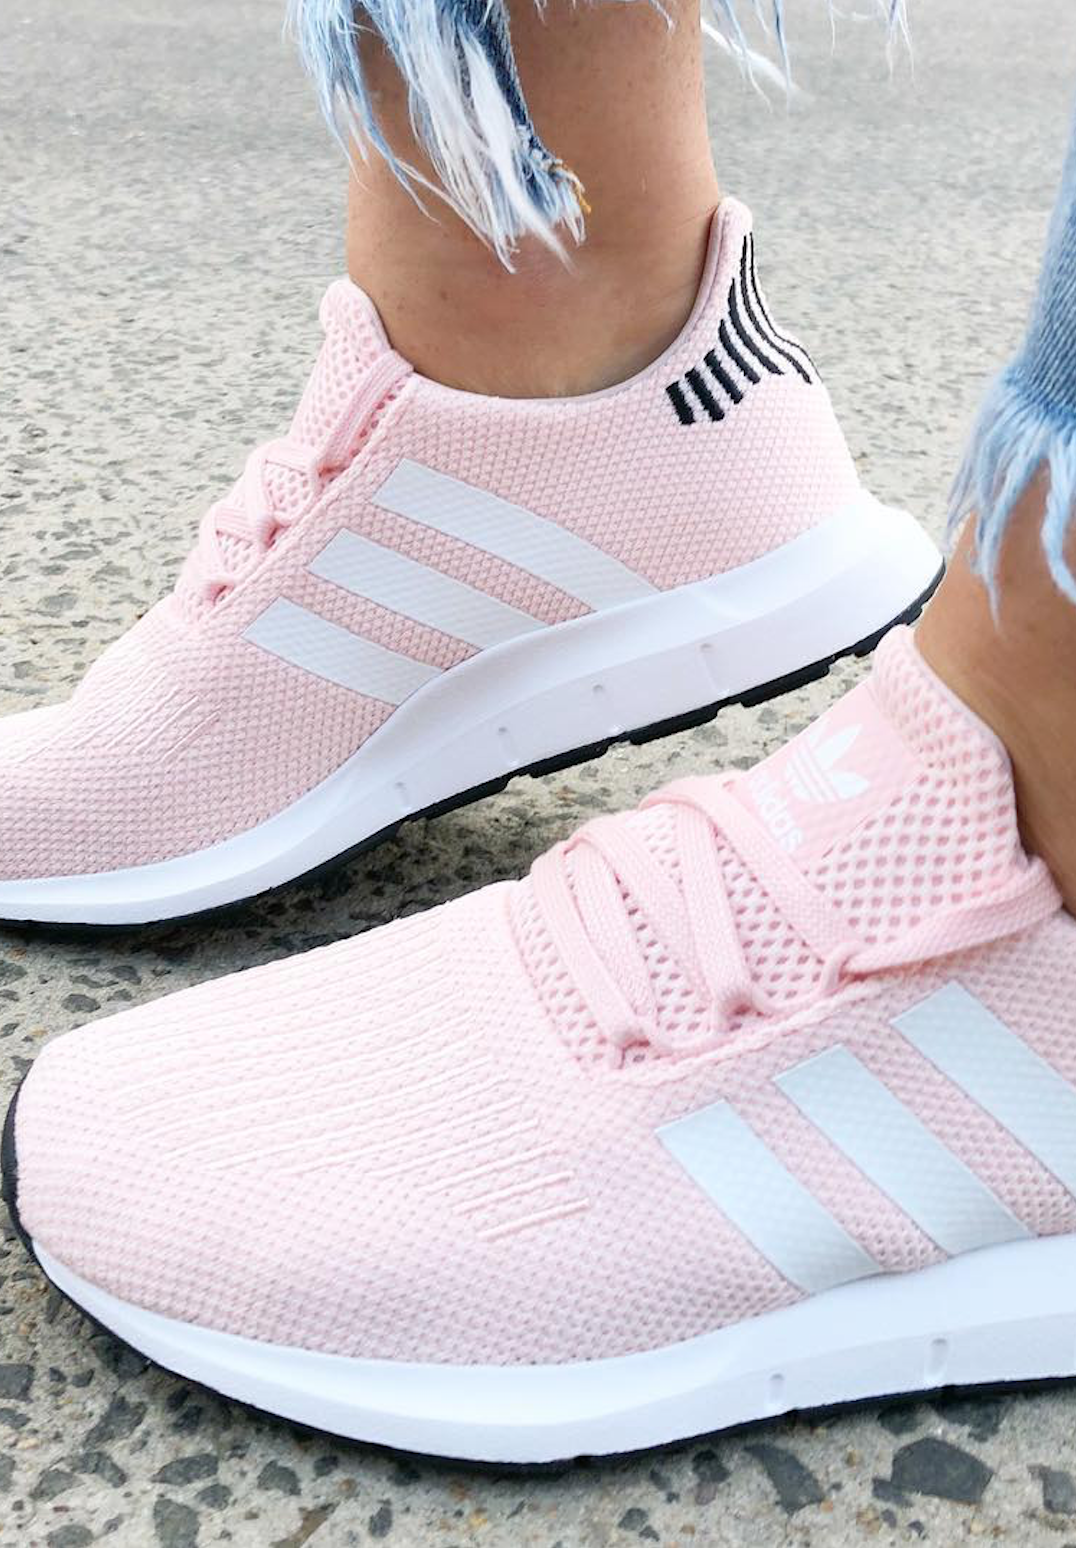 sale retailer 37da4 c6c69 adidas Swift Run Sneakers in Icy Pink. Seriously stylish shoes 2018.